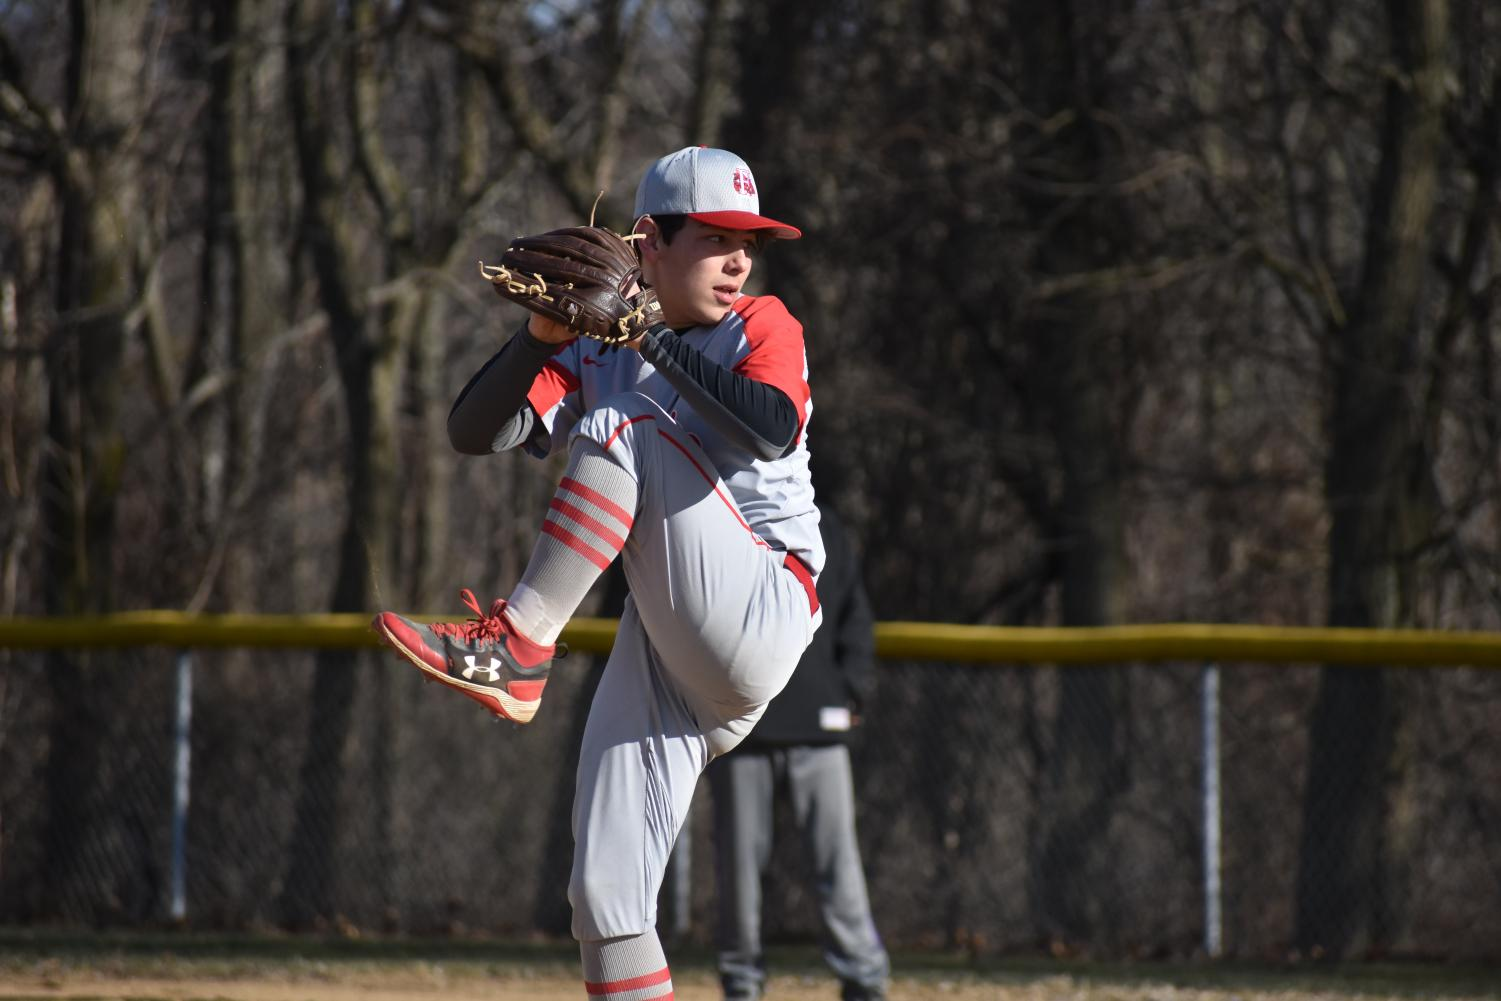 Junior Jacob Bauman is one of many returning players from last year. Above as a sophomore, Bauman is seen gearing up for a pitch during the Bulldogs game against Summit Academy on March 13.